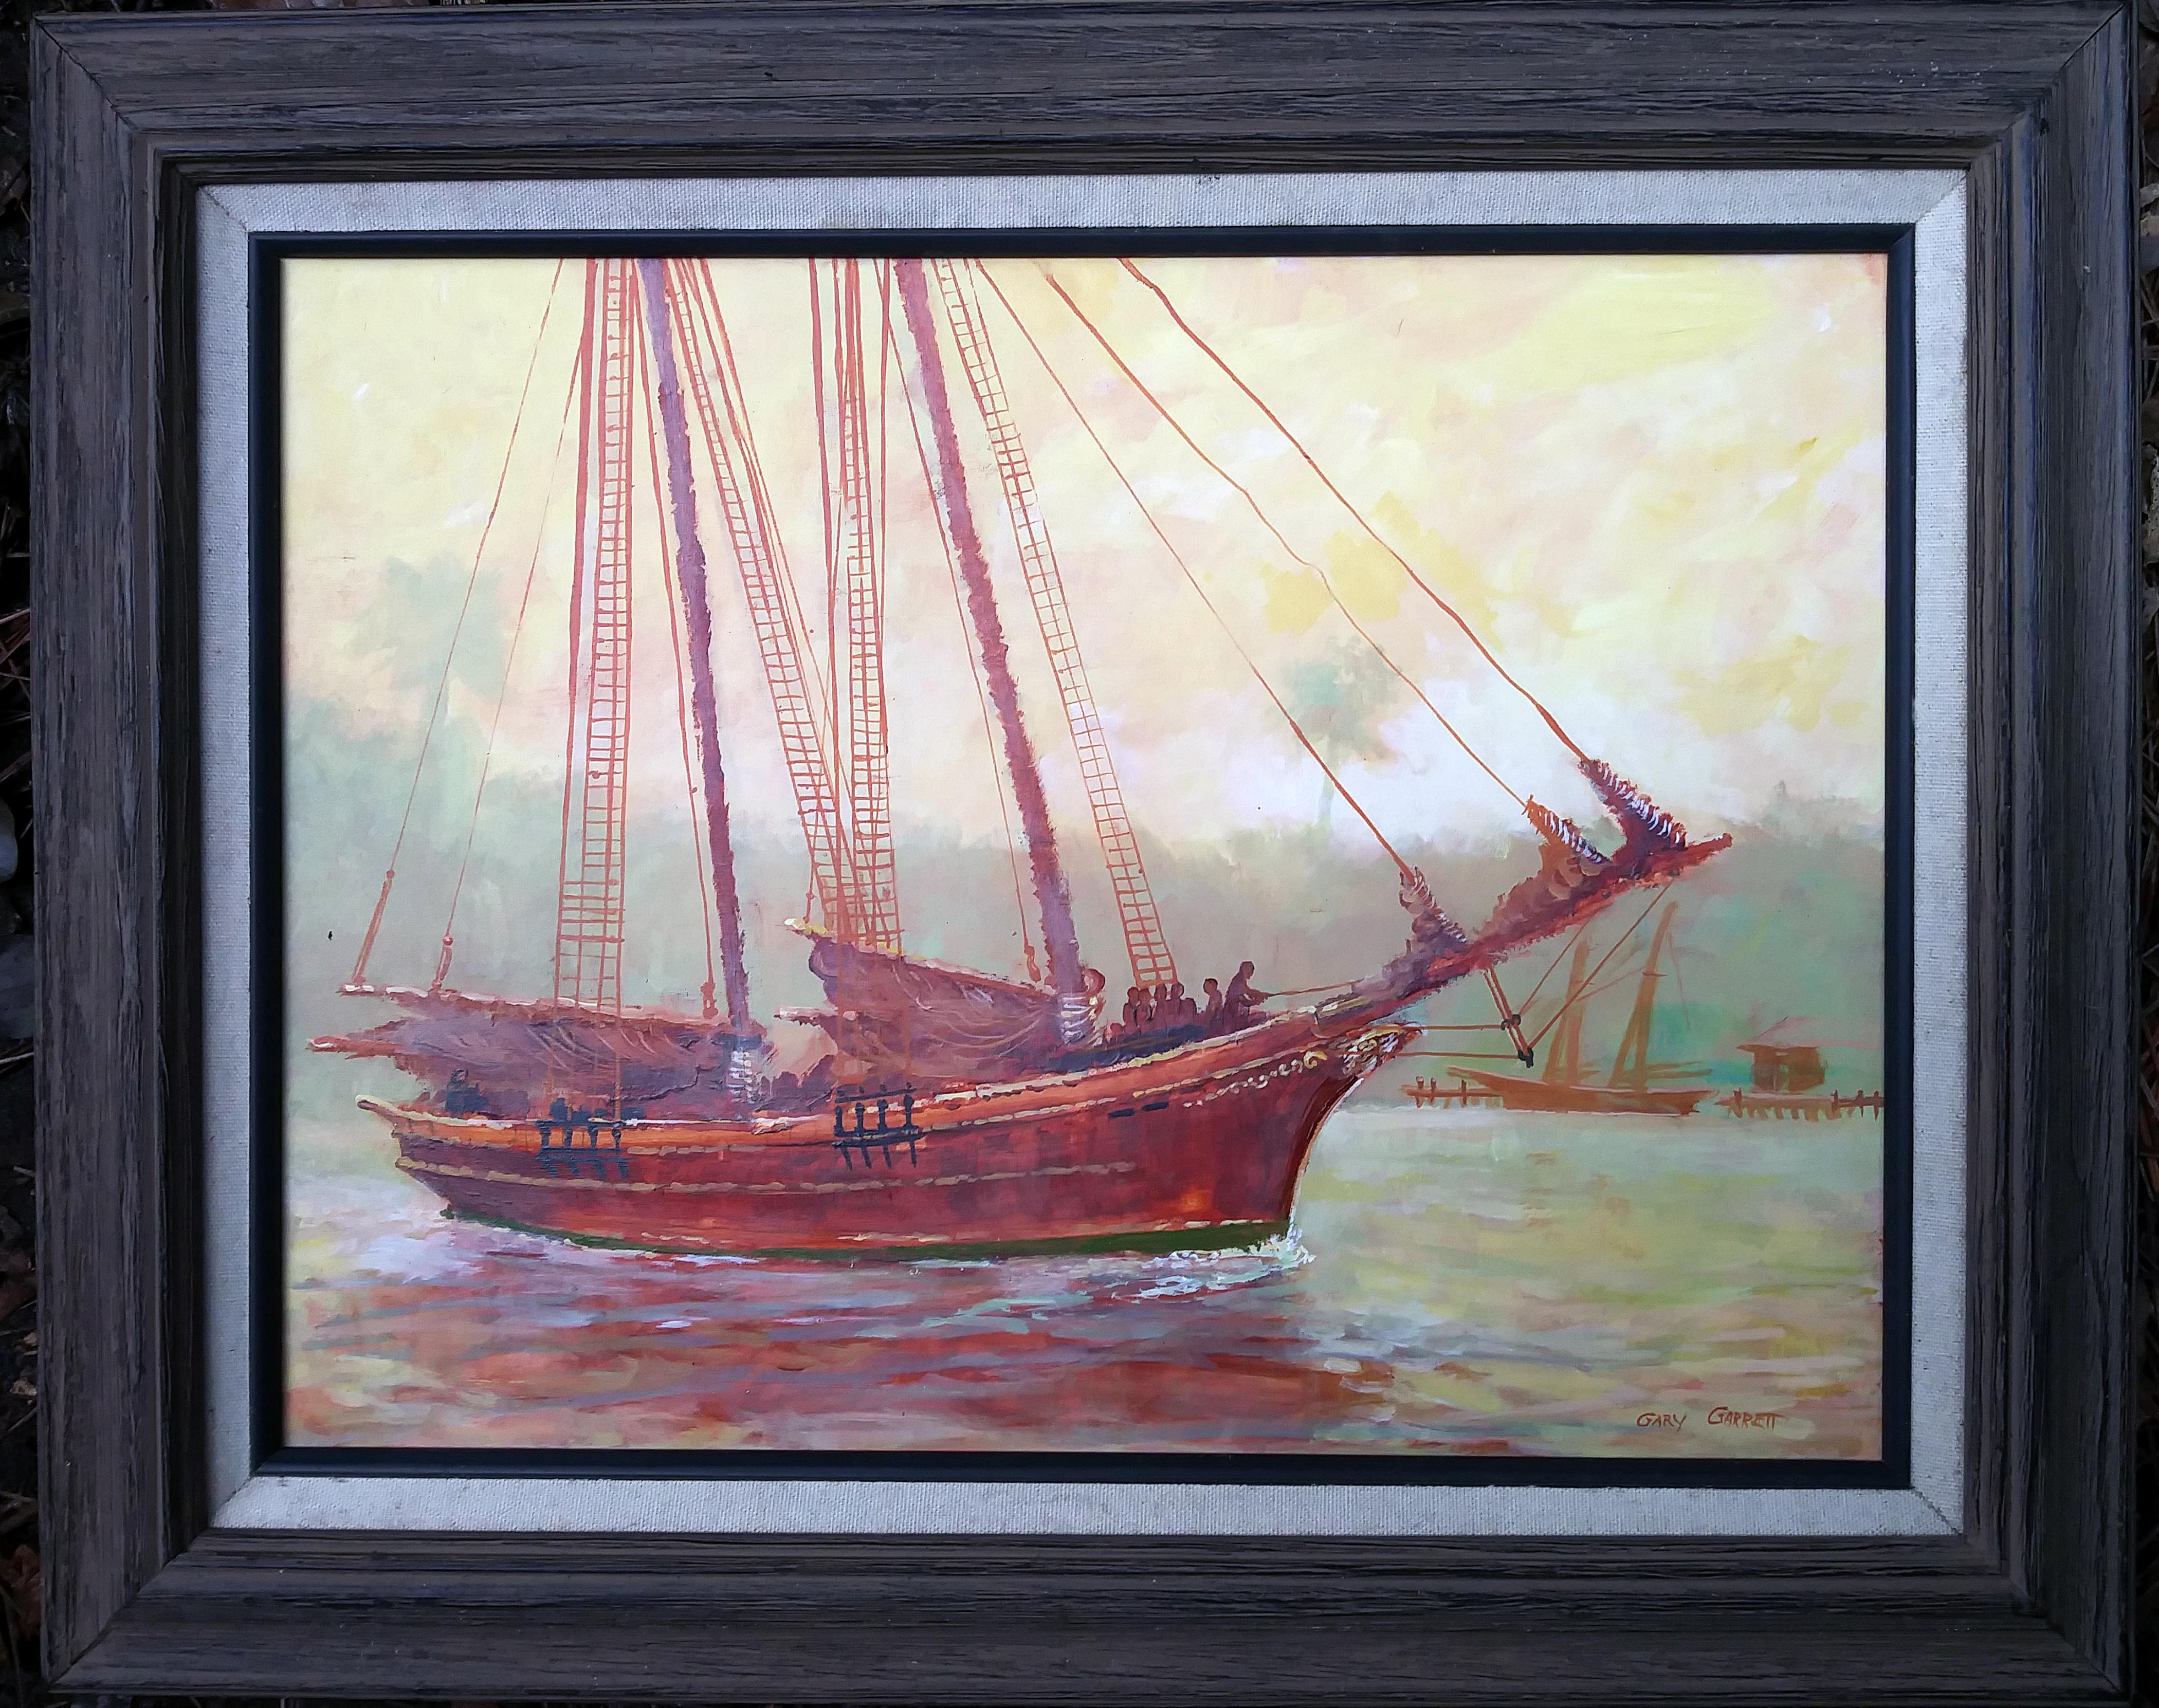 'Early Departure', acrylic by Gary Garrett ($185) ⎼ 'I am normally a plein air landscape painter, but due to the pandemic, I have not been out as much as I would like. This is a studio piece from a memory of a two masted schooner leaving Mayport in the early 1970s when I was in the navy and stationed at Mayport. It is painted with a minimum palette of Yellow Ochre, Prussian Blue, Titanium White and Burnt Sienna. I loved painting this memory, hope you will love it too.